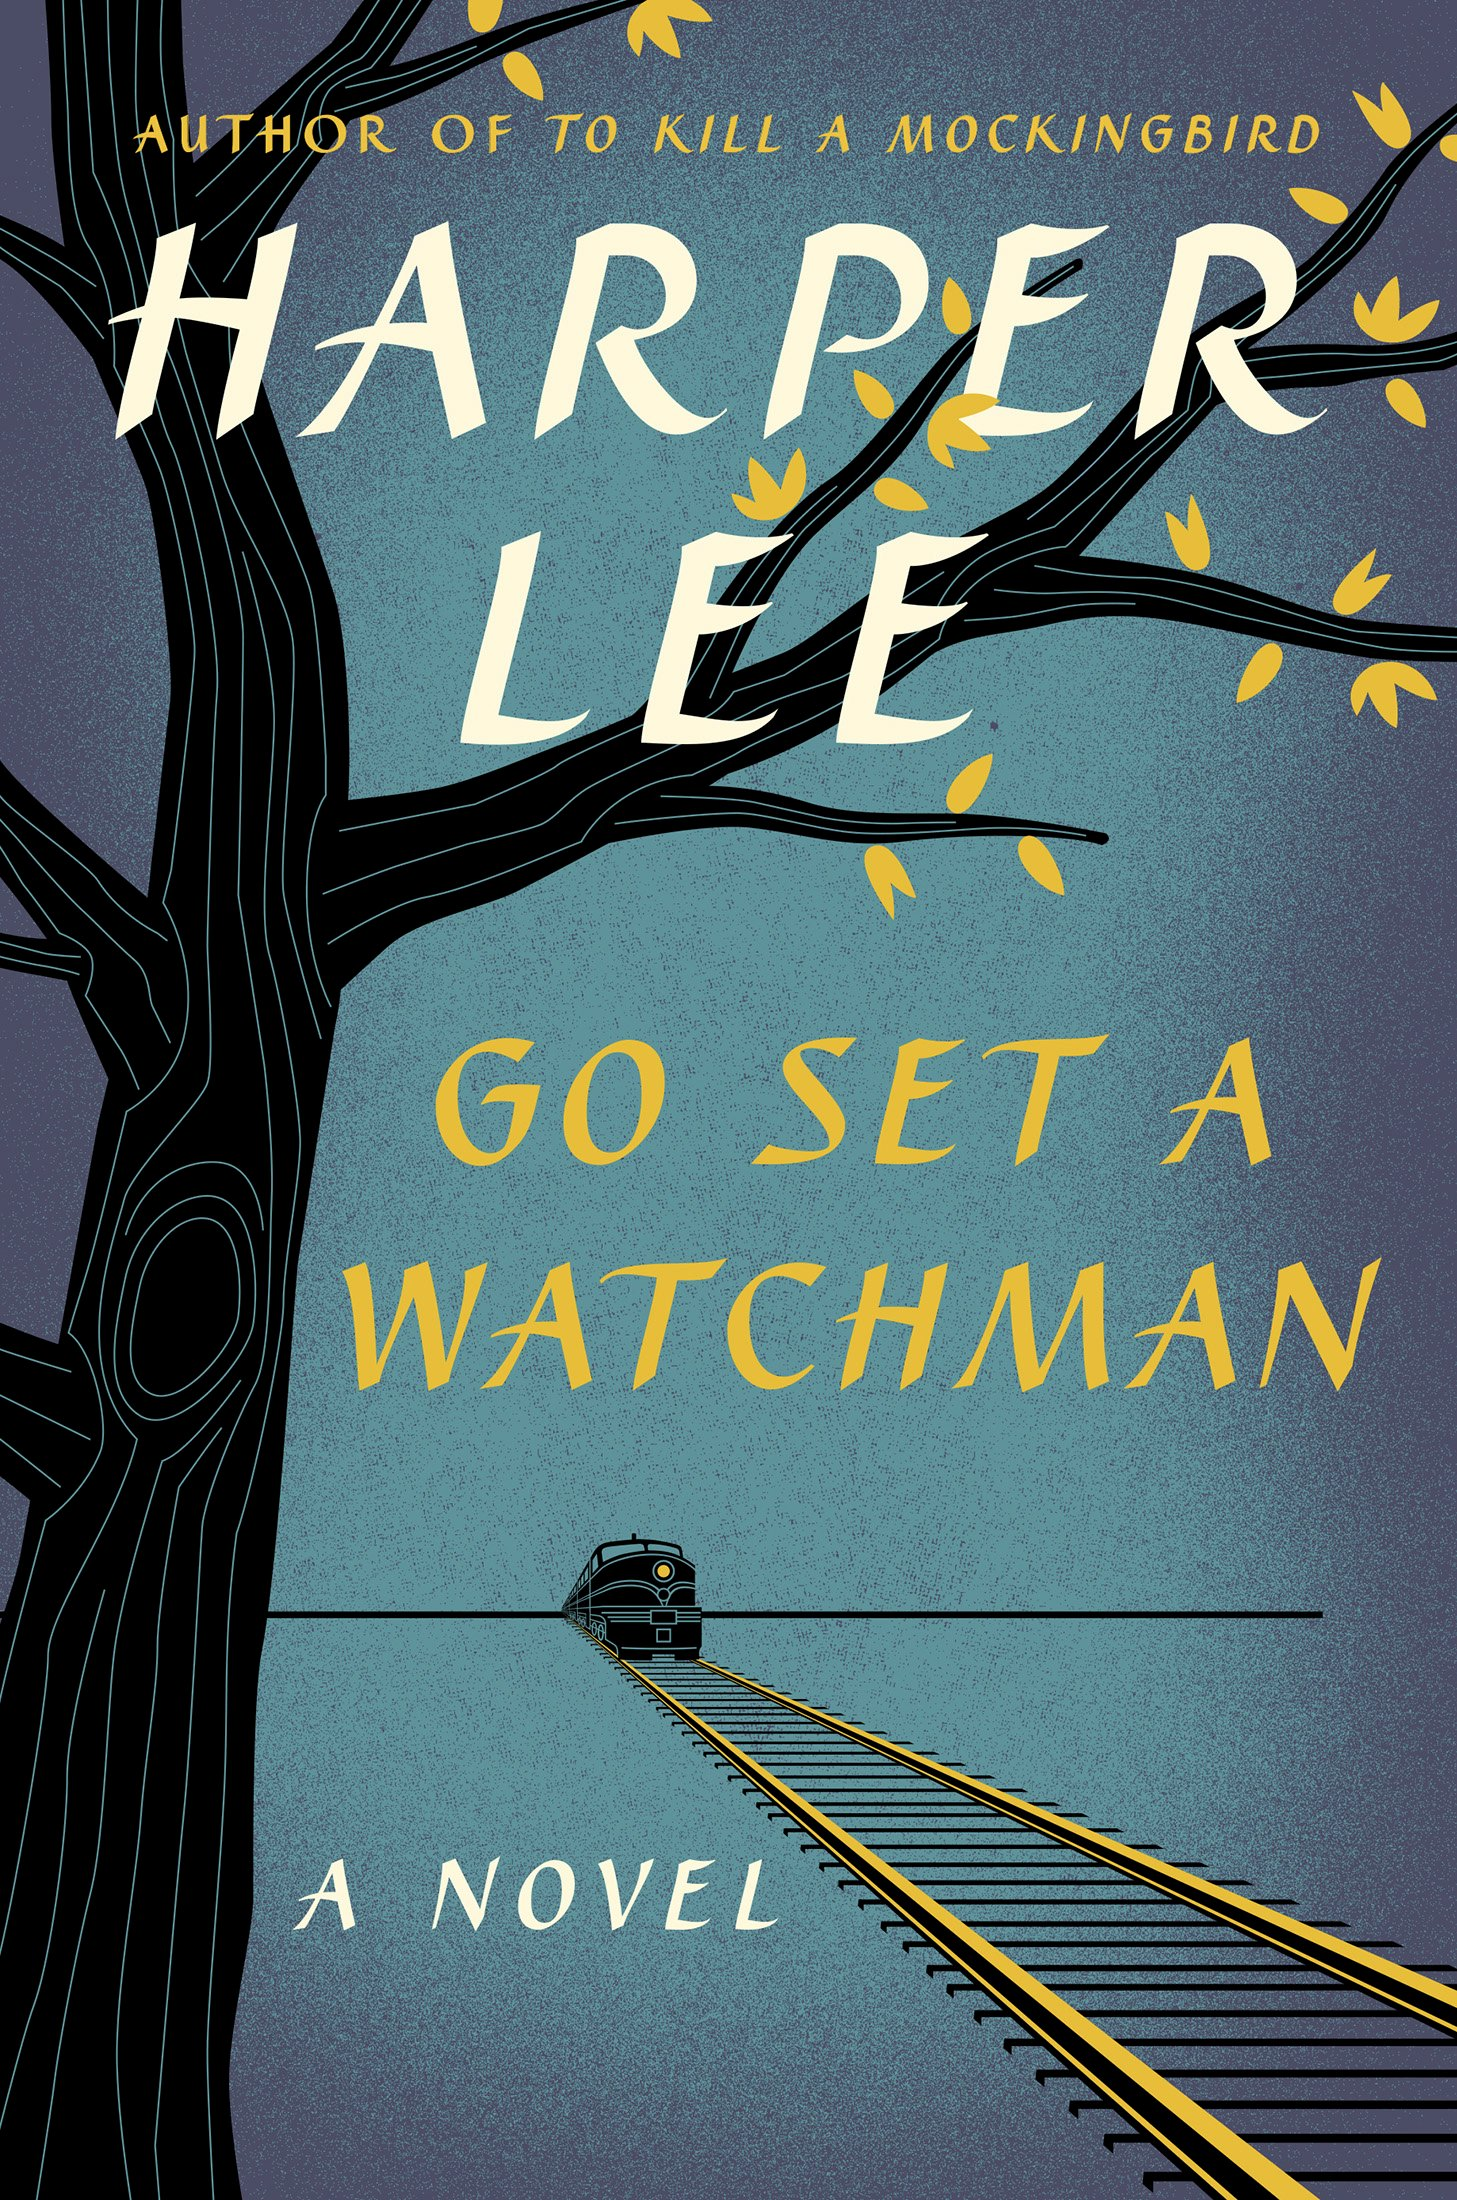 Harper Lee exits the one-hit wonder book club with 'Watchman